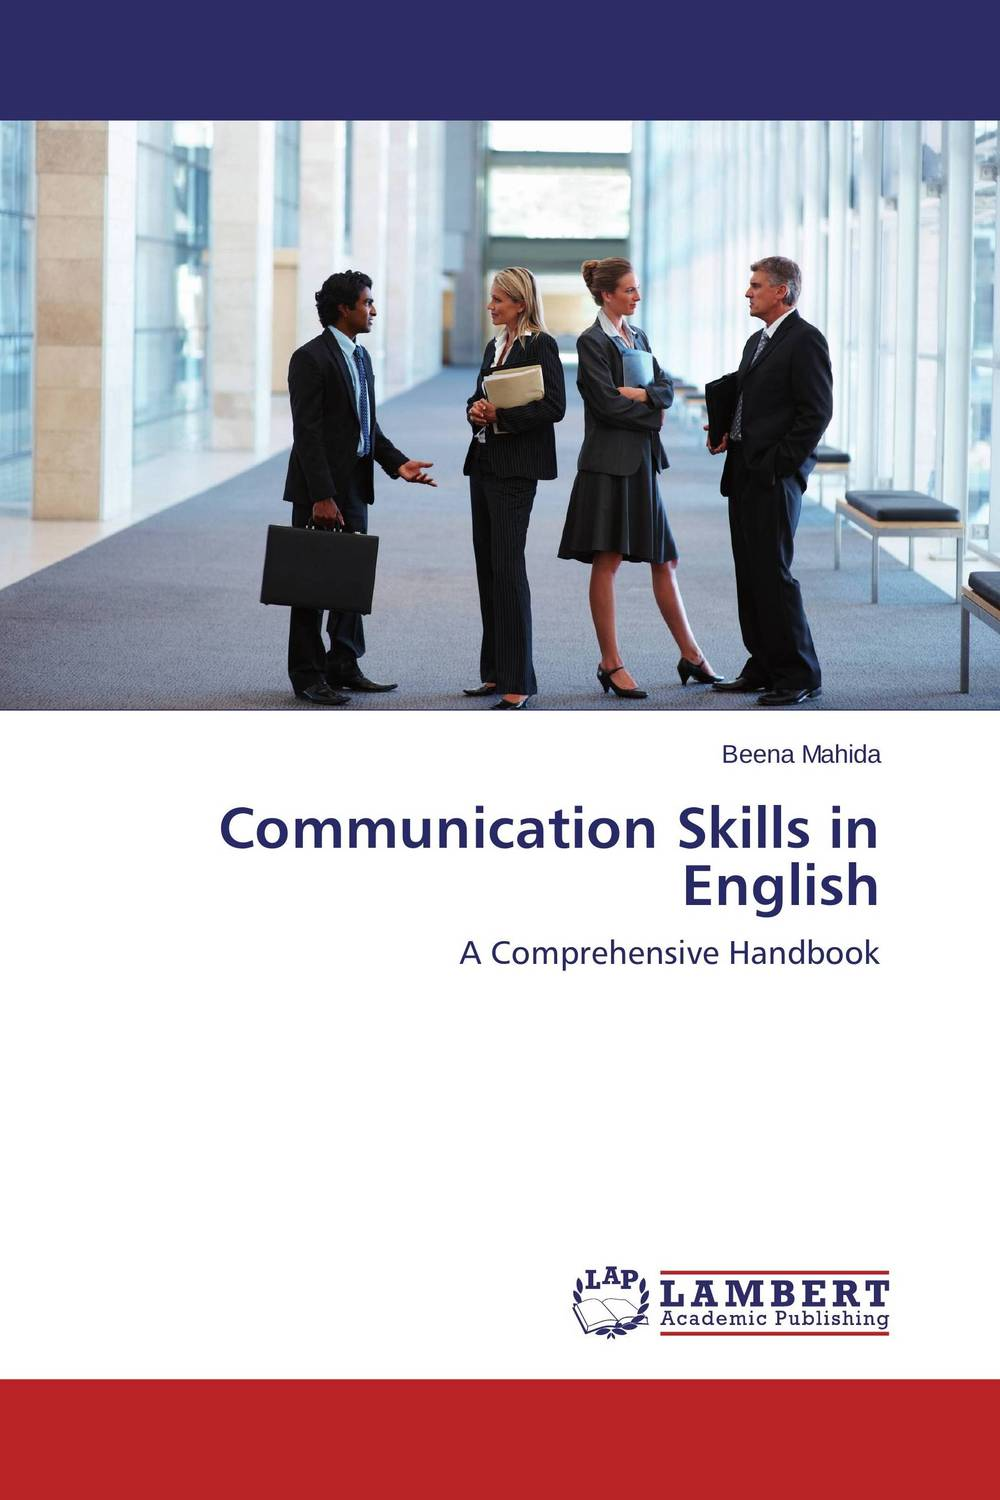 Communication Skills in English murphy–black antenatal group skills training – a manual of guidelines pr only